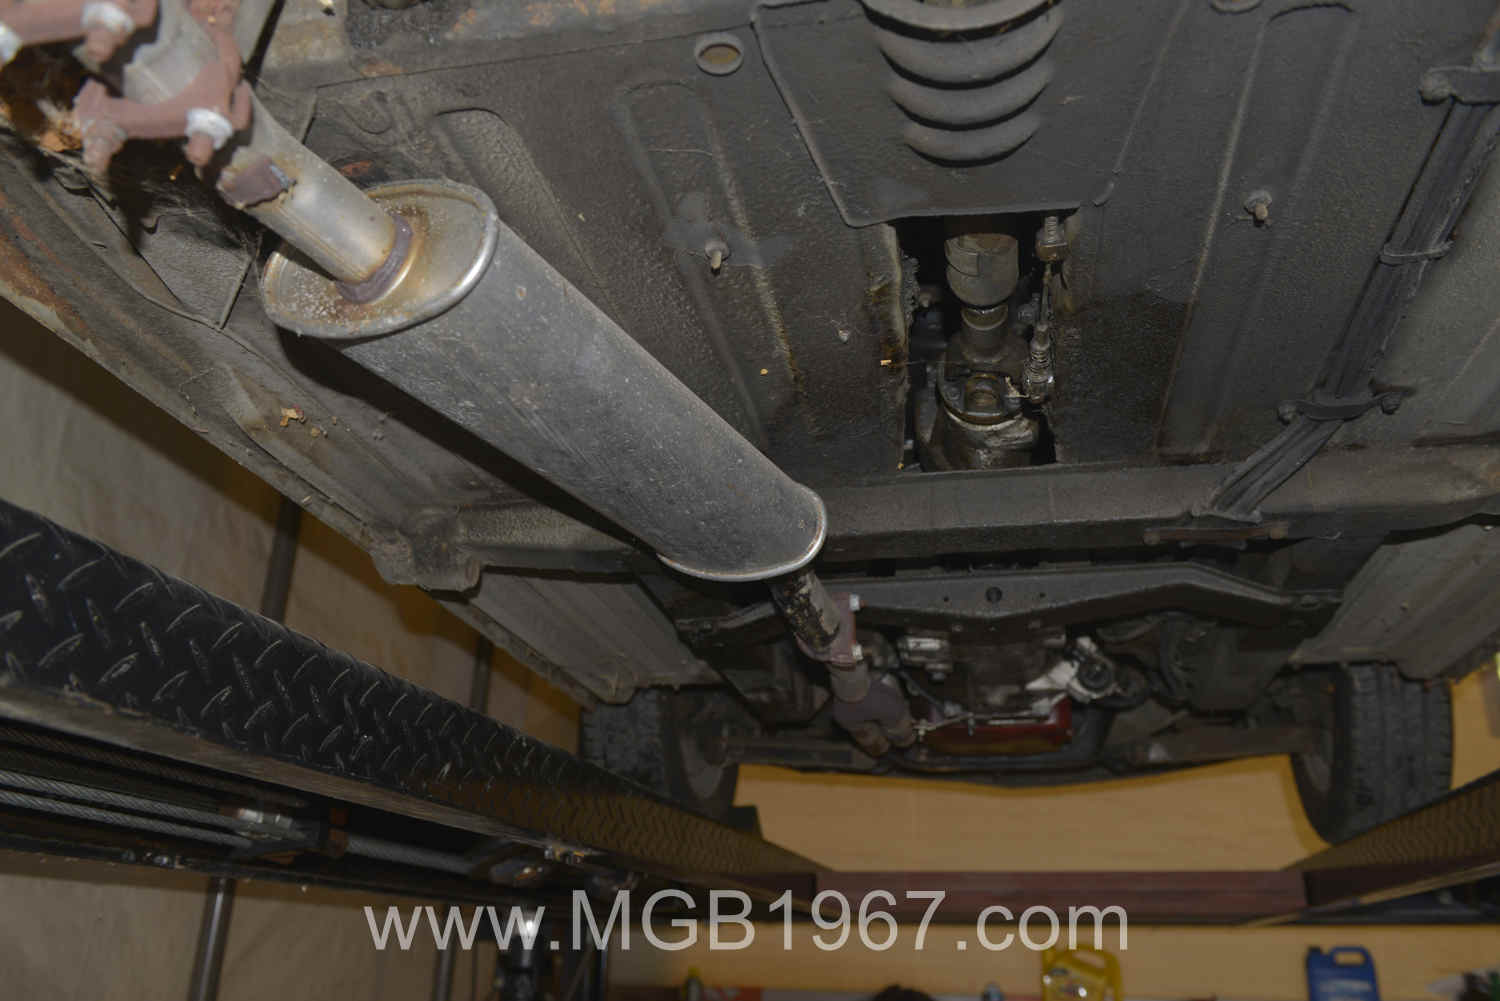 MGB undercarriage before cleaning | 1967 MGB GT